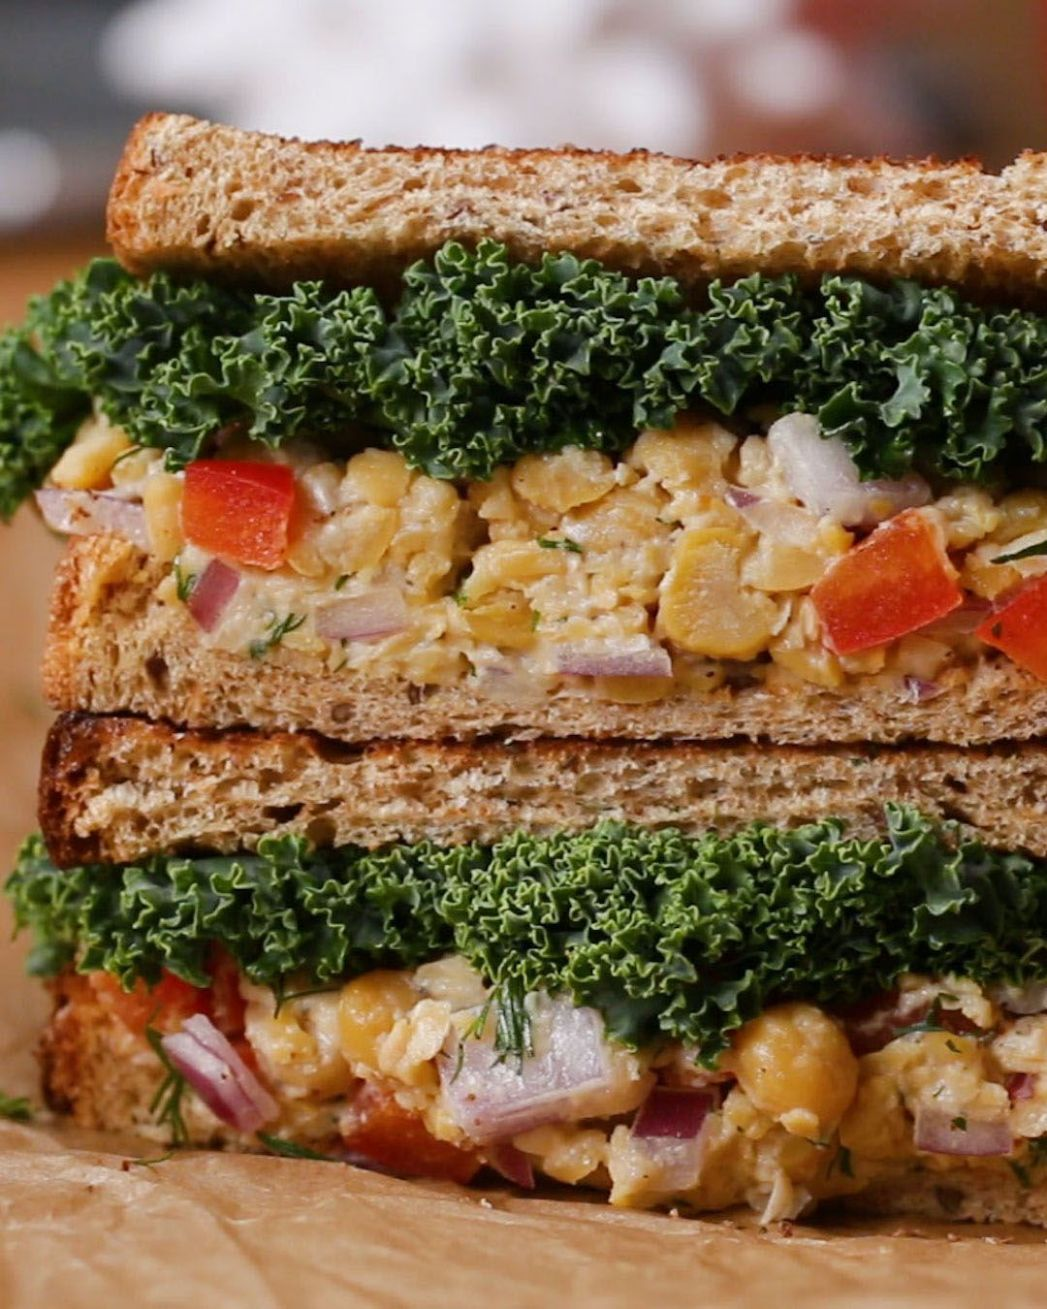 Easy To Pack Vegan Lunches by Tasty in 8 | Vegan lunch recipes ..